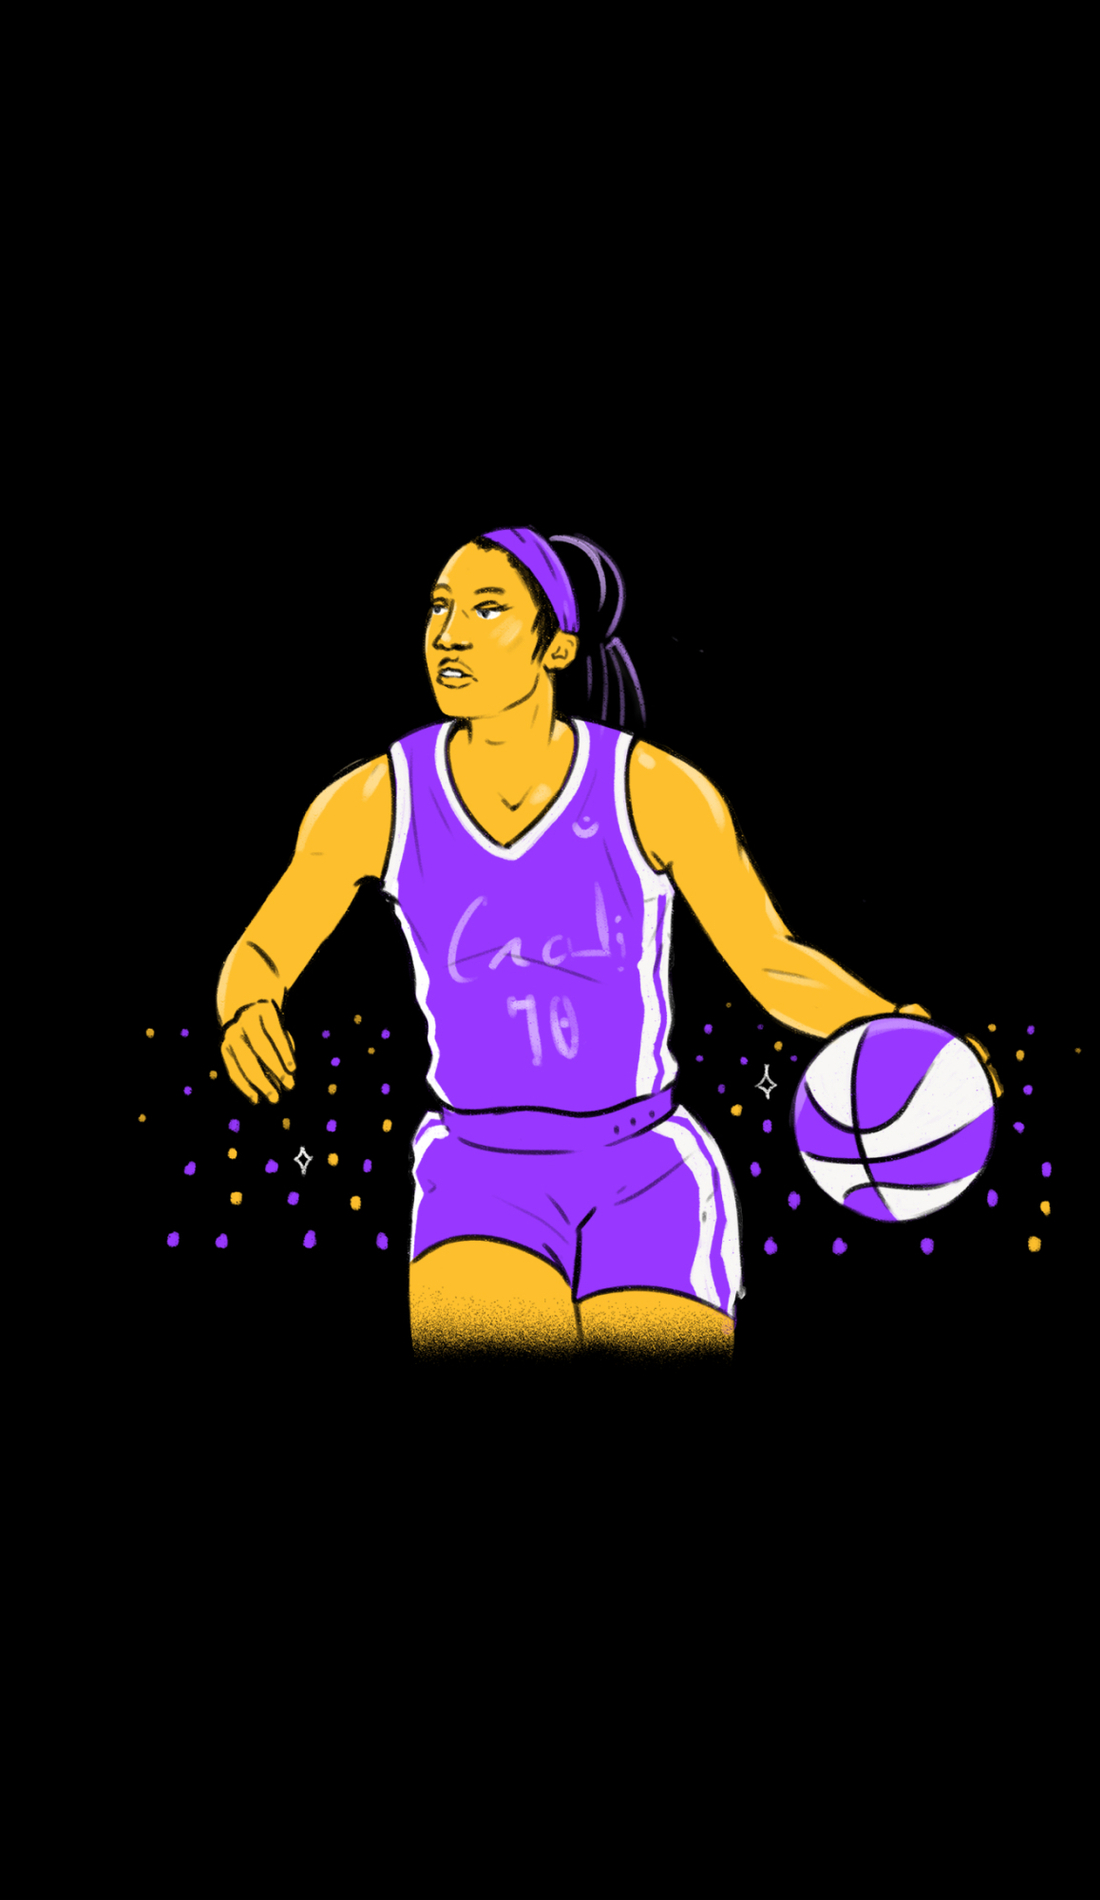 A Marist Red Foxes Womens Basketball live event